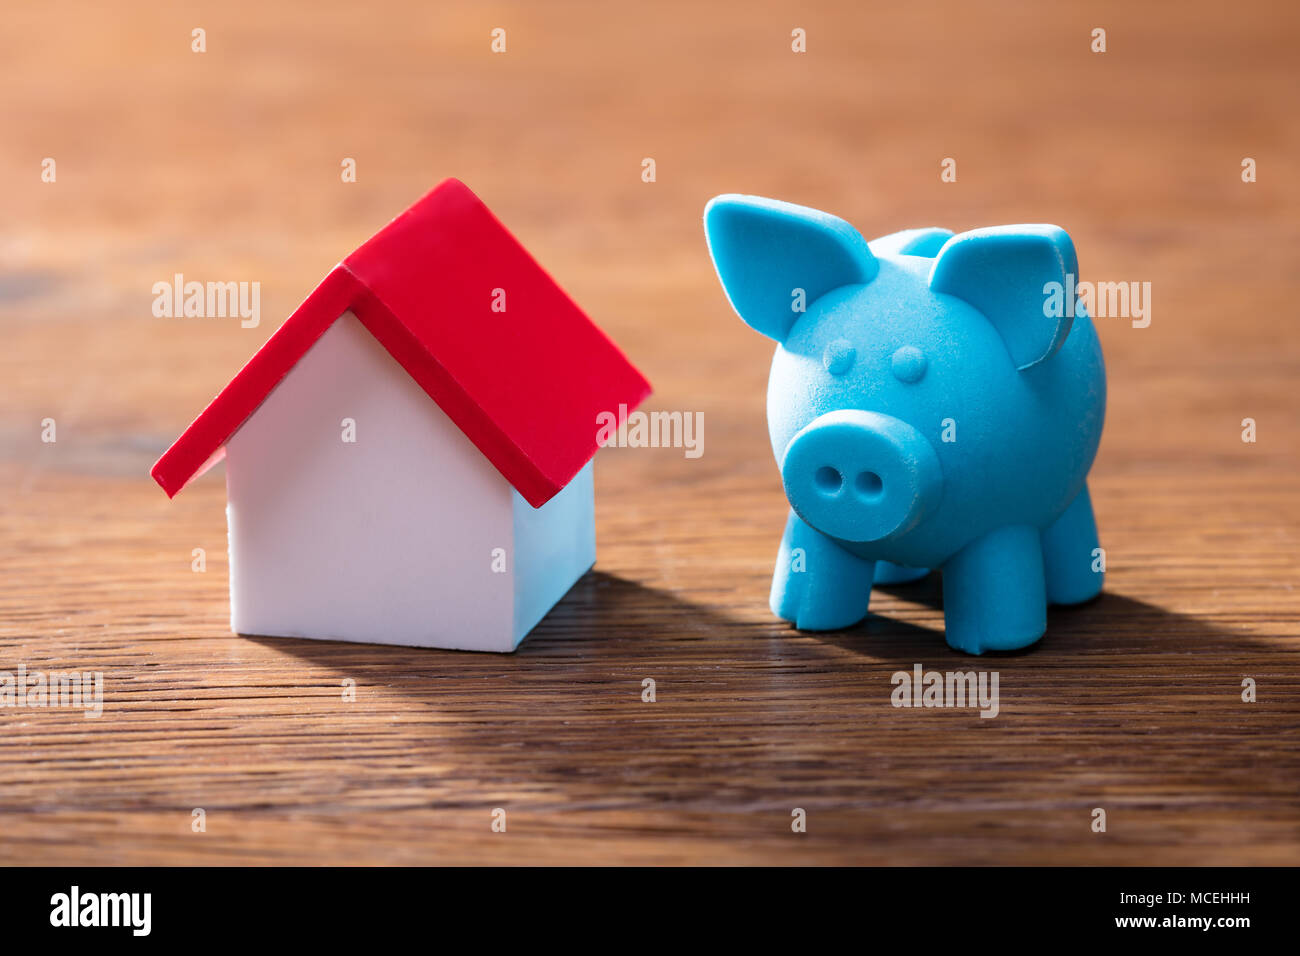 Close-up Of House Model And Blue Piggybank On The Wooden Table Stock Photo